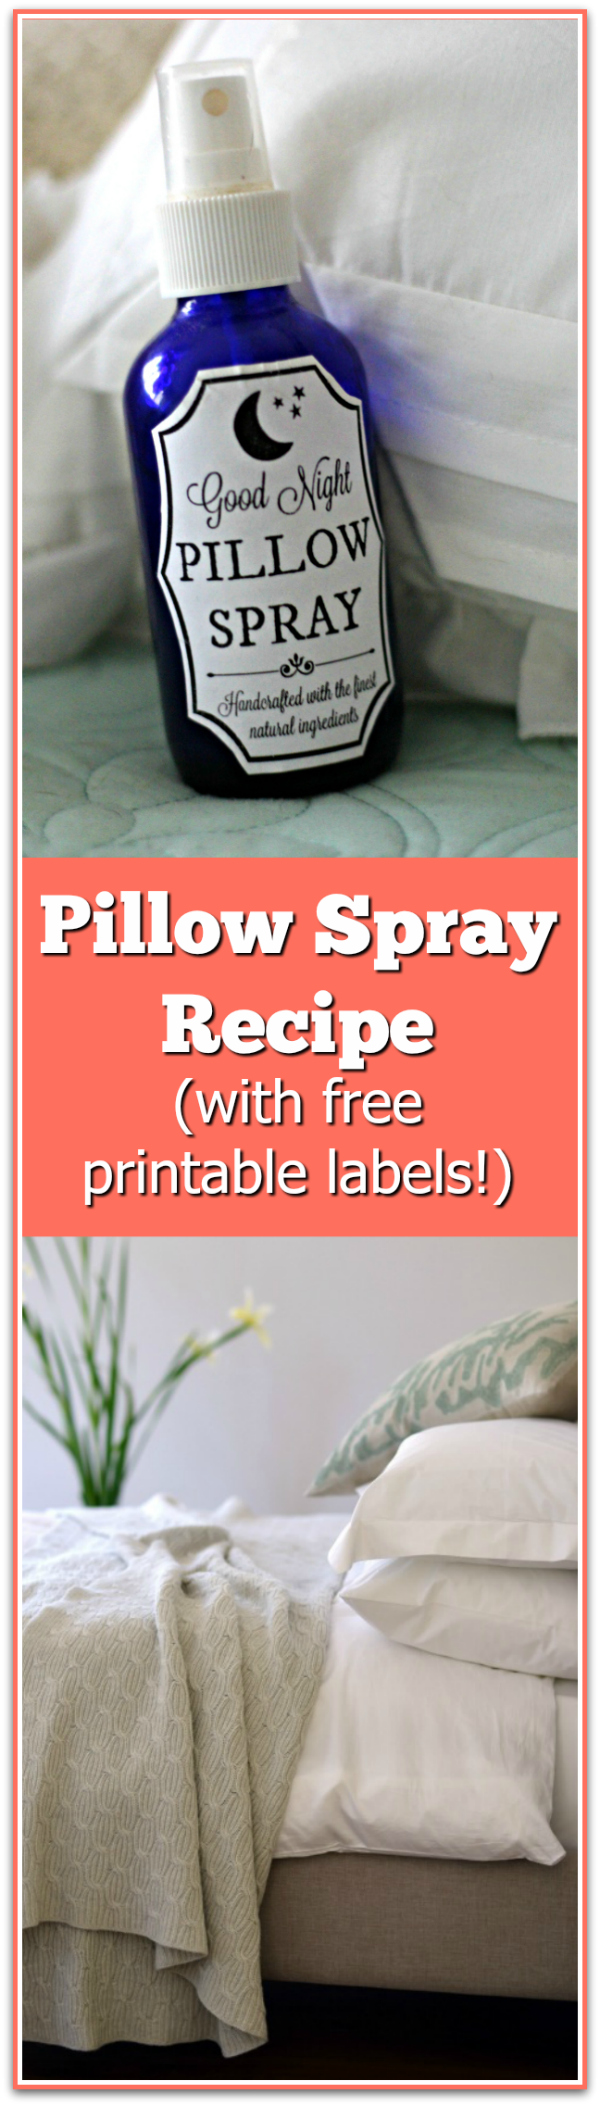 This pillow spray works like a charm! Love it! It gets kids to sleep, too.